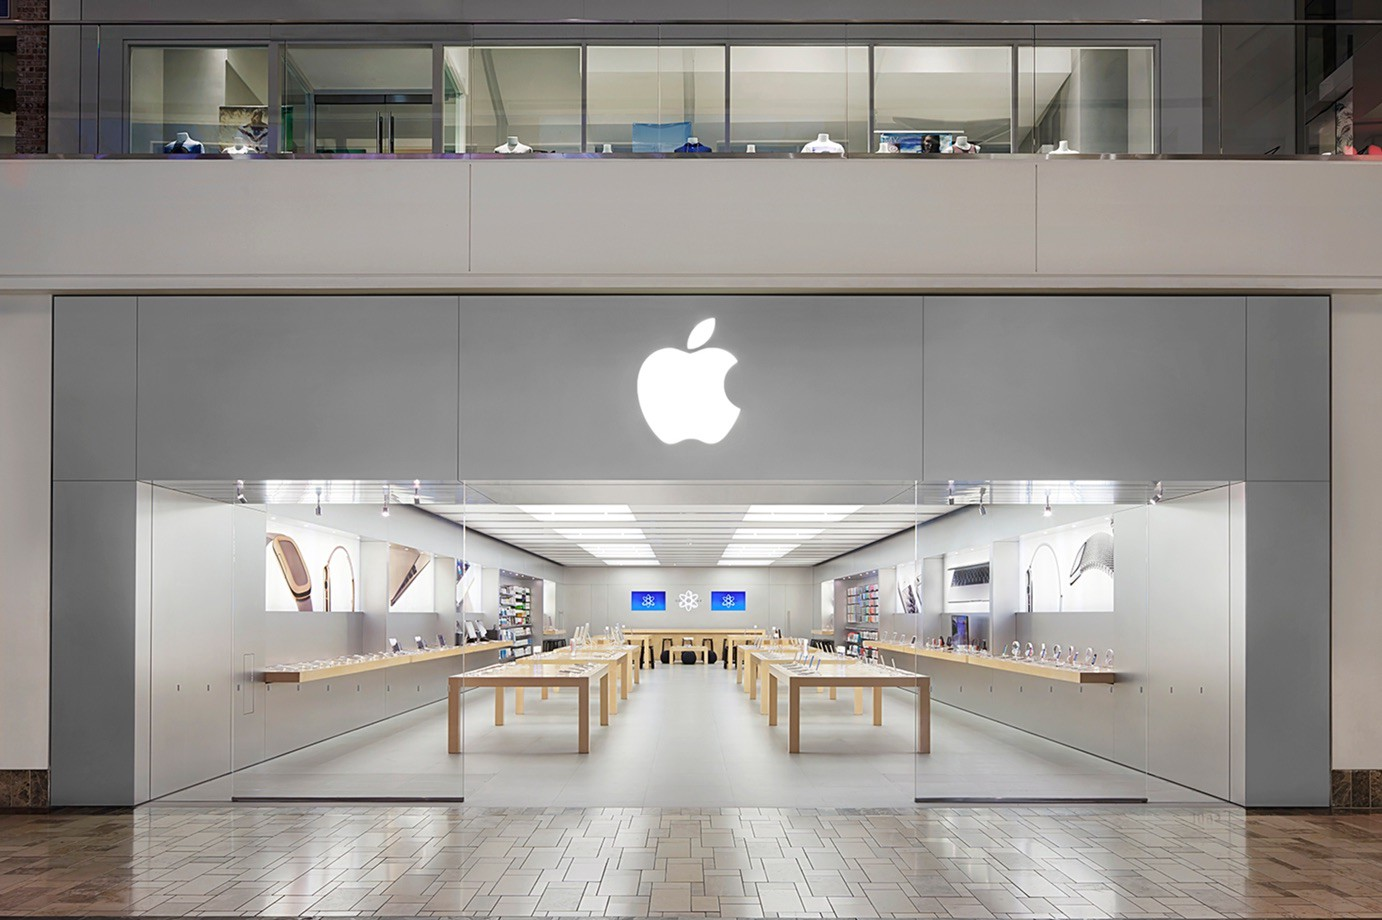 An empty Apple Store photographed from the outside